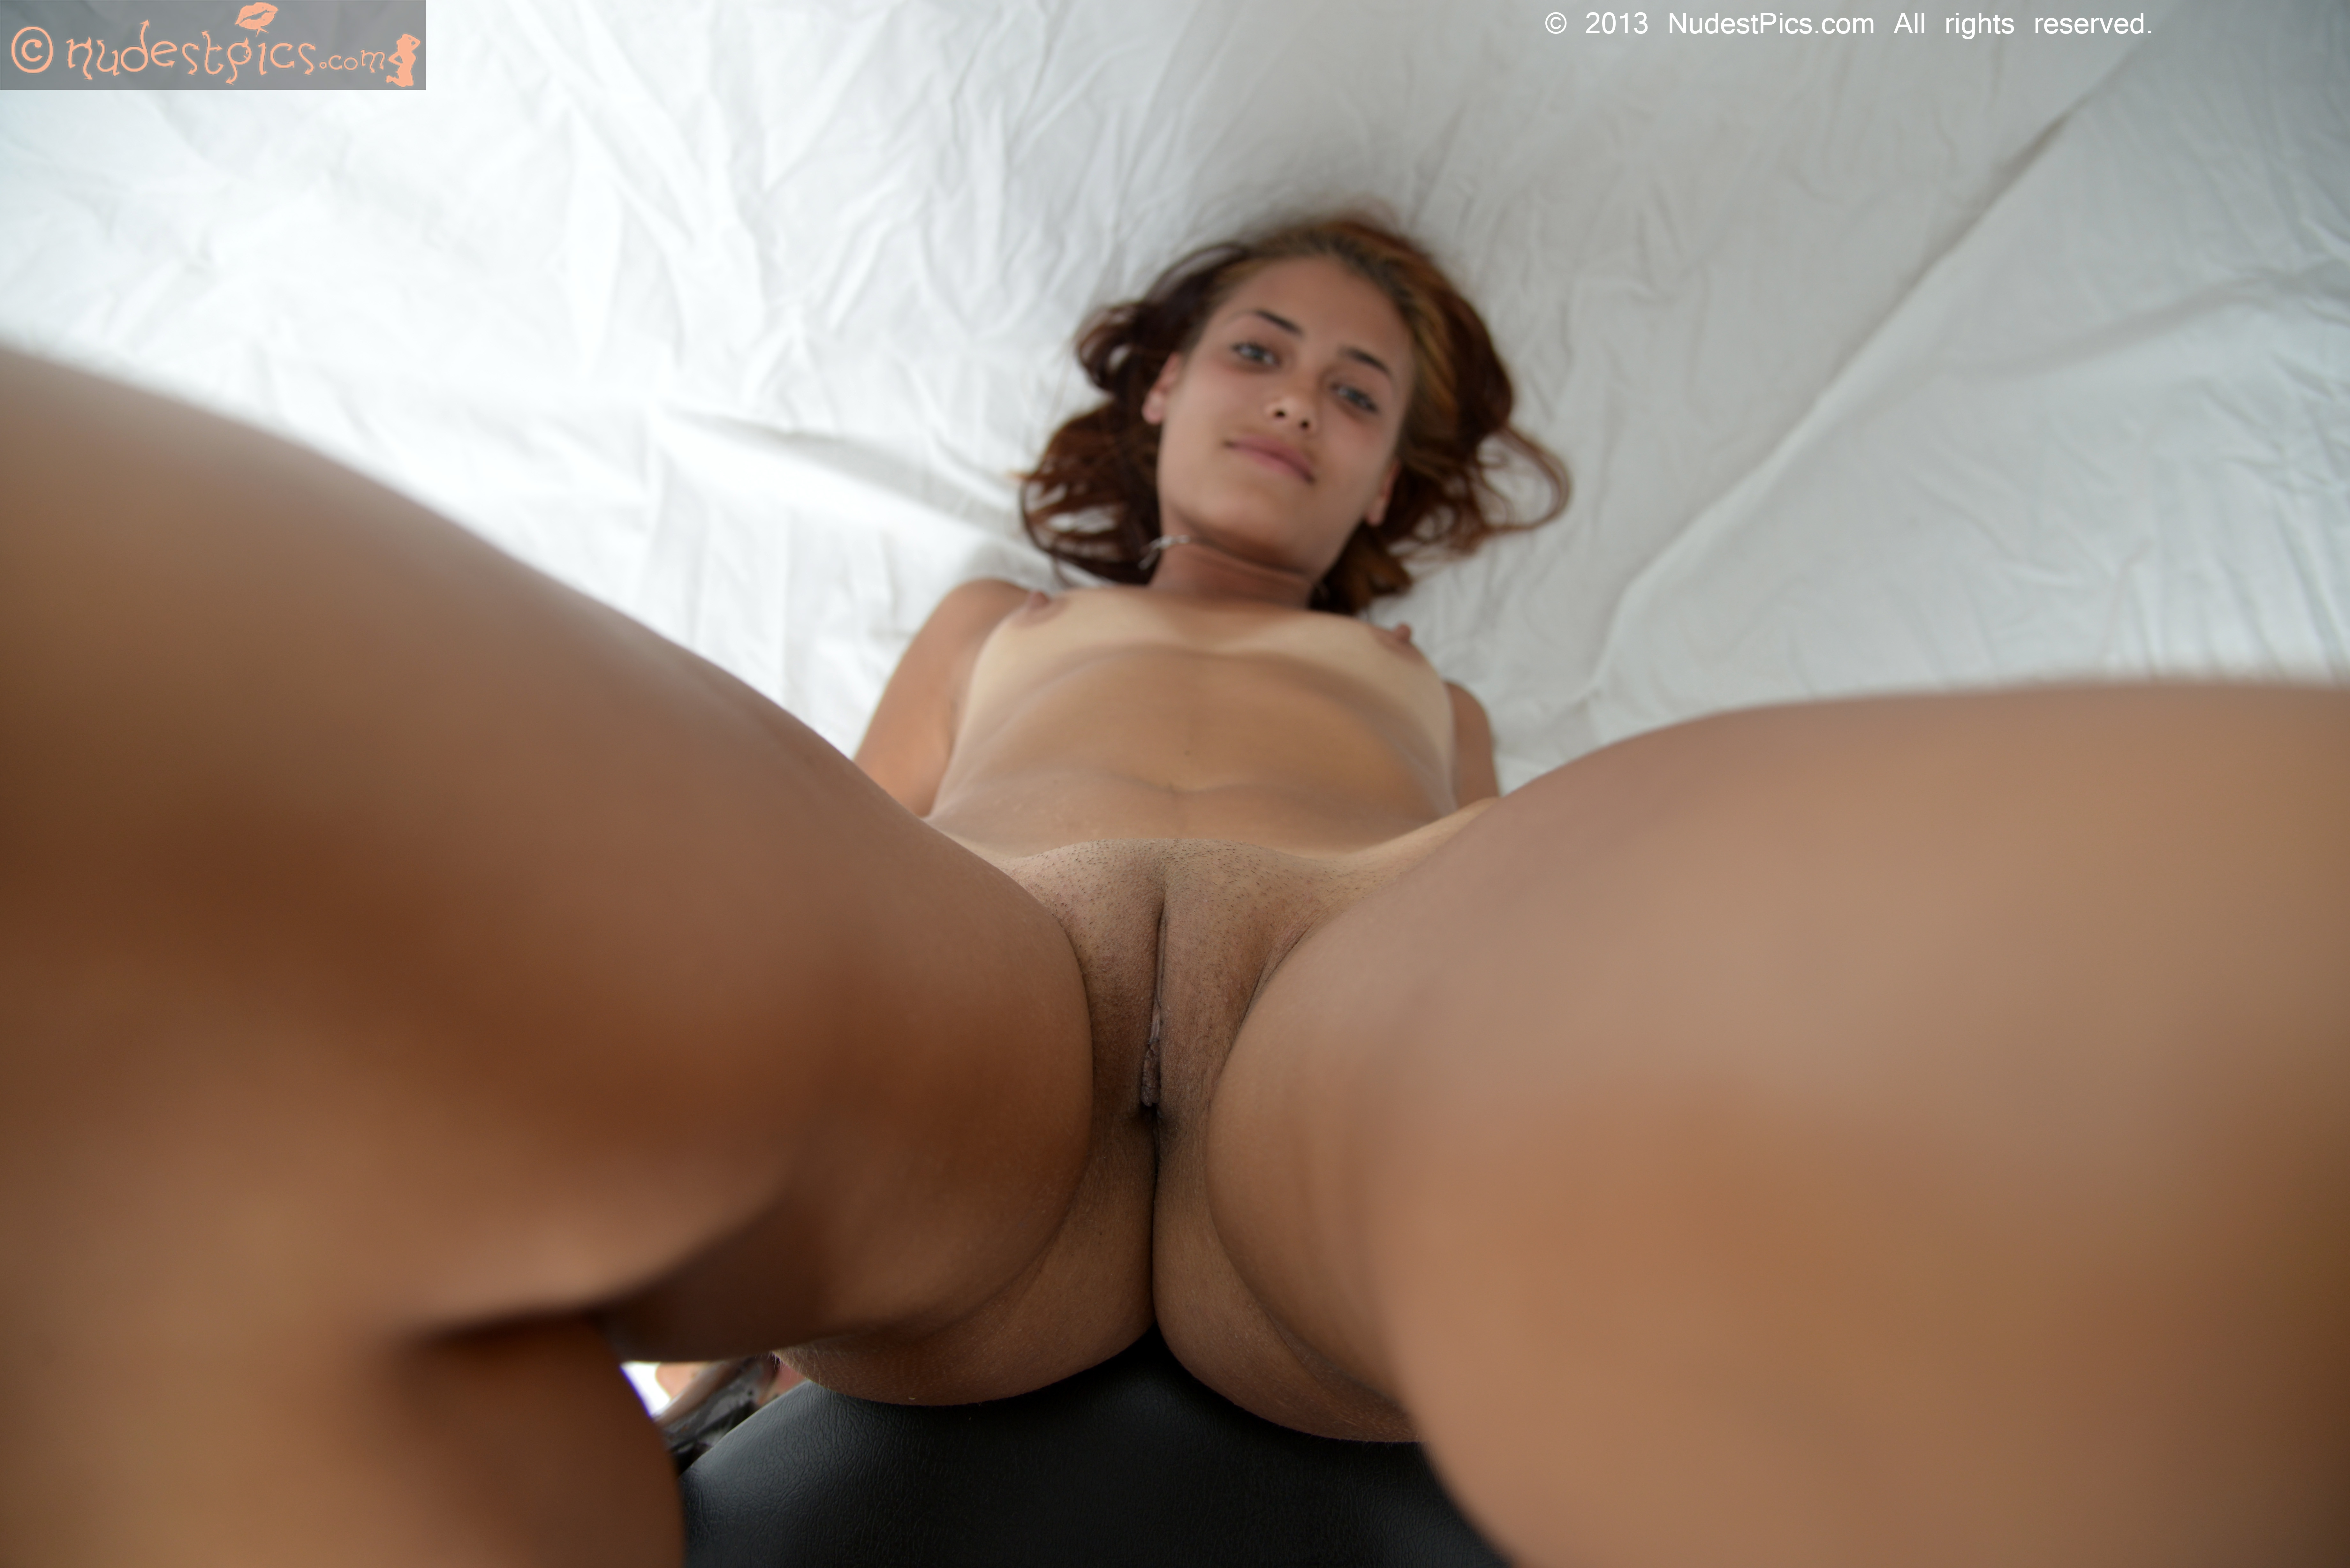 Girls xposed weird pussy naked